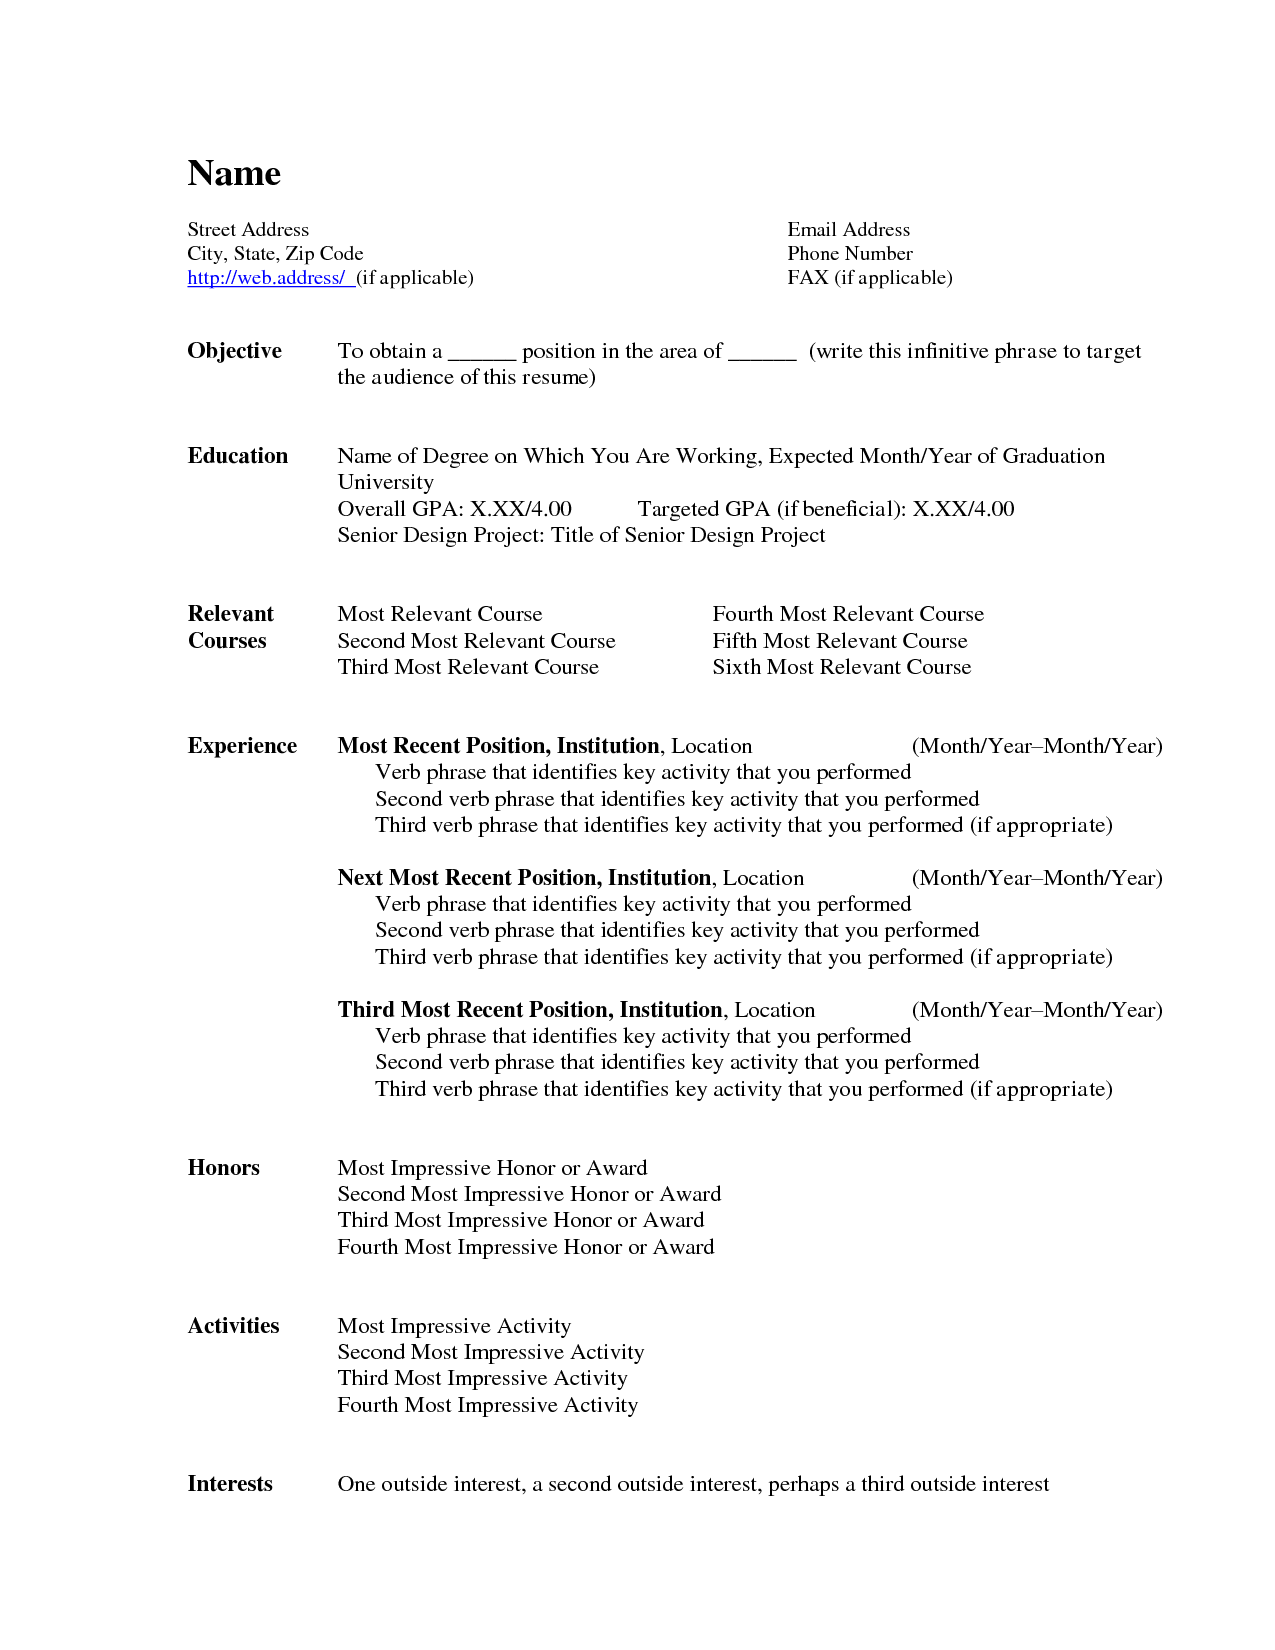 New Ms Word Resume Format Ms Word Resume Format   Resume Template Online  Formatting A Resume In Word